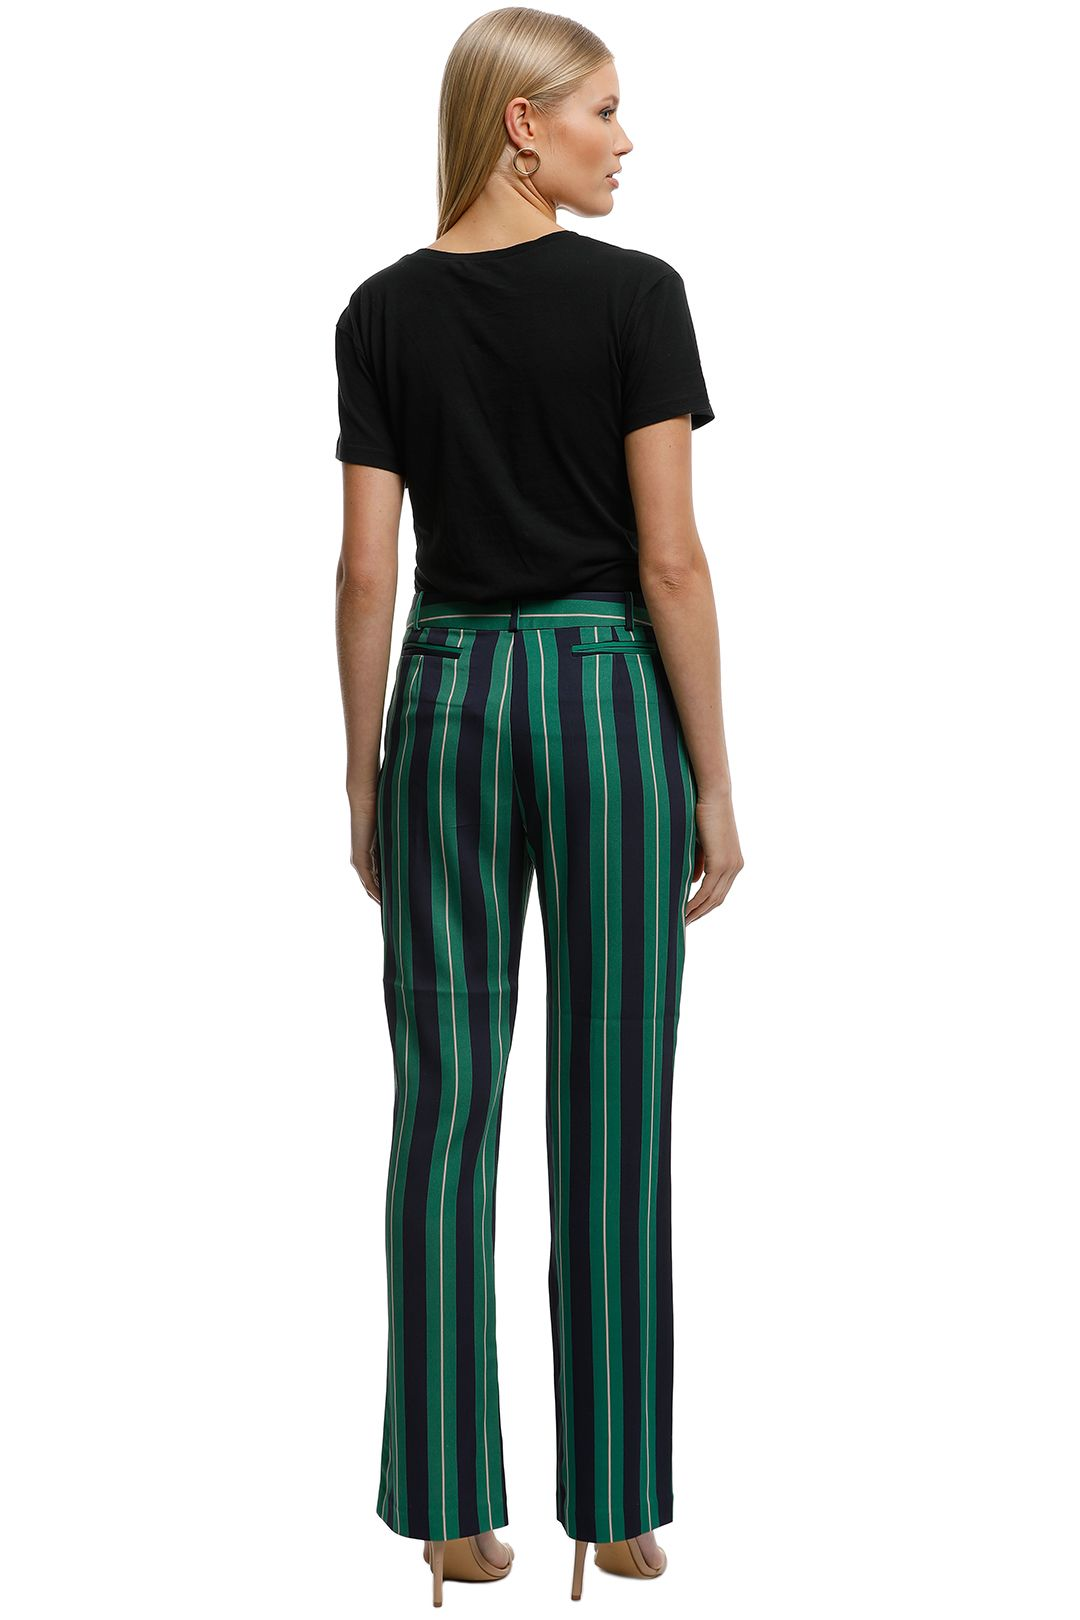 Moss-and-Spy-Gatsby-Pant-Green-Stripe-Back